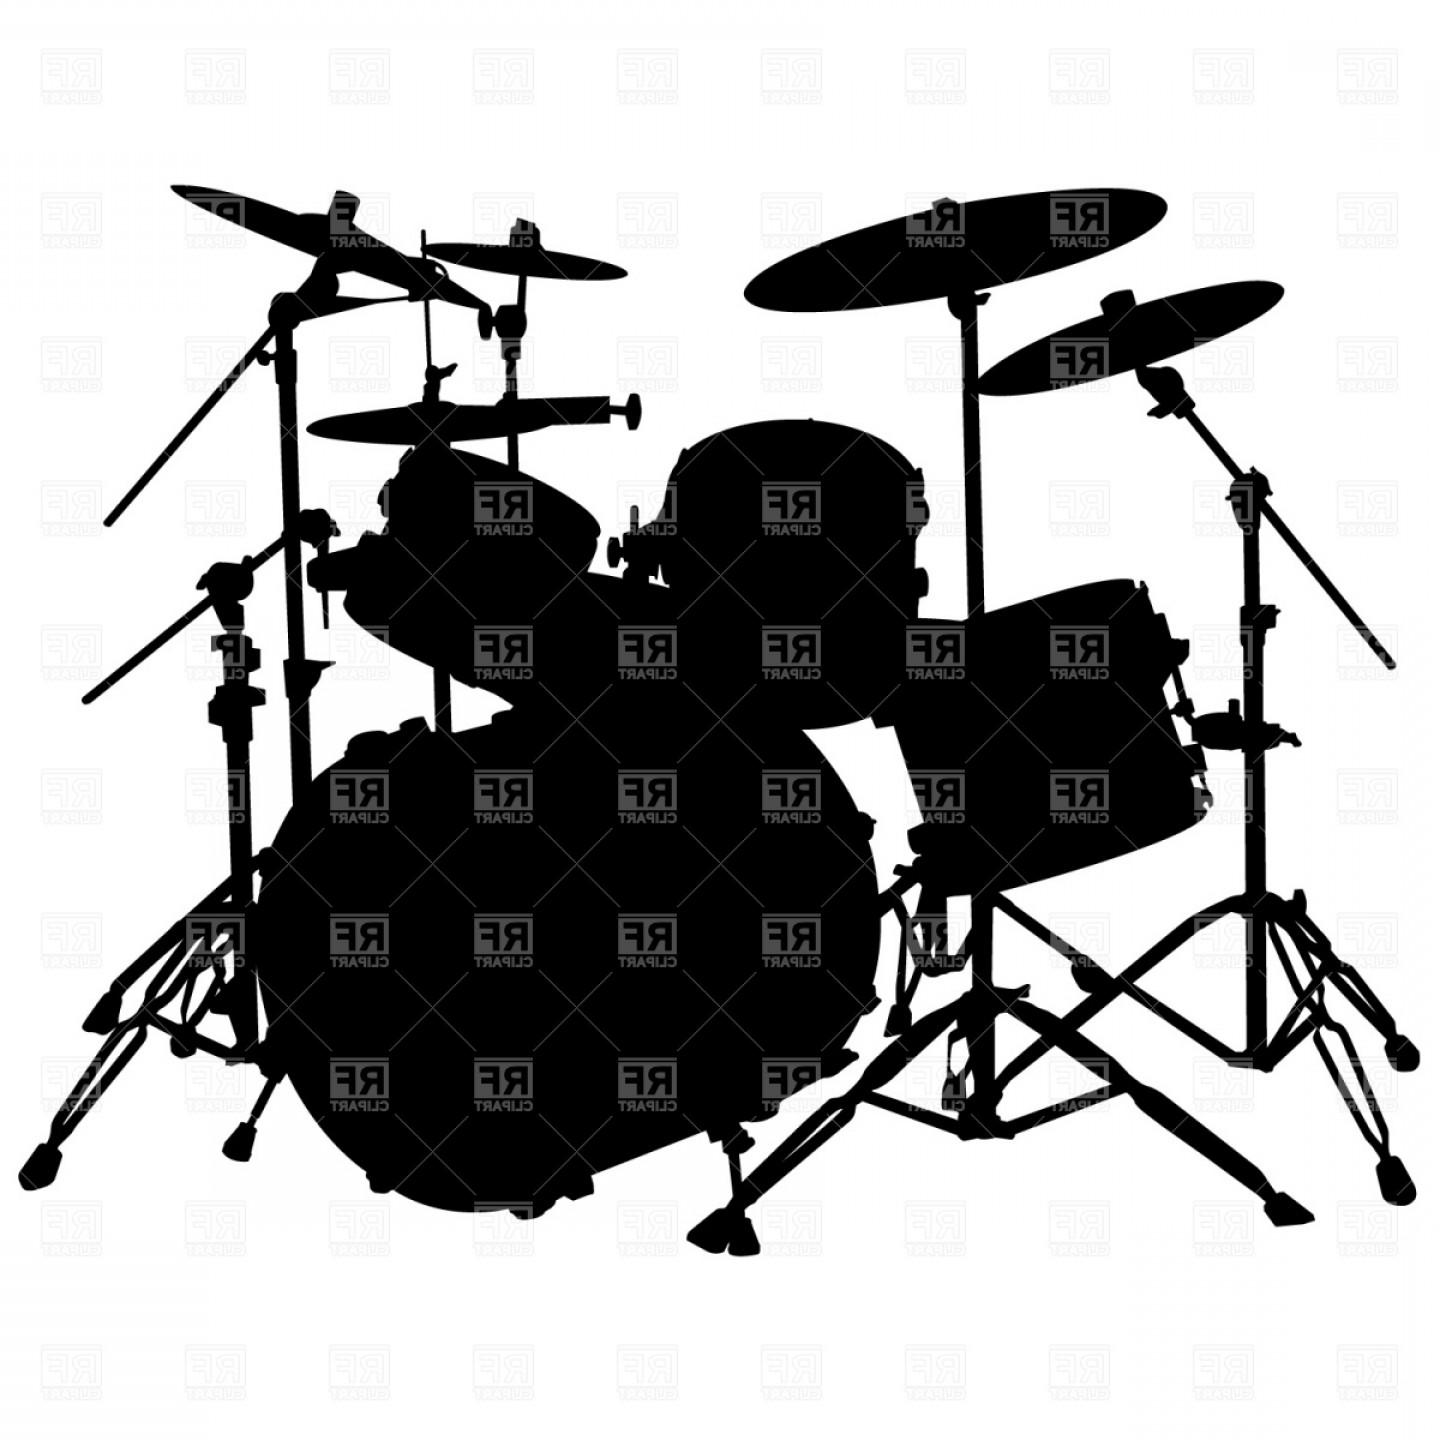 Drum Vector Art: Drum Kit Silhouette Vector Clipart